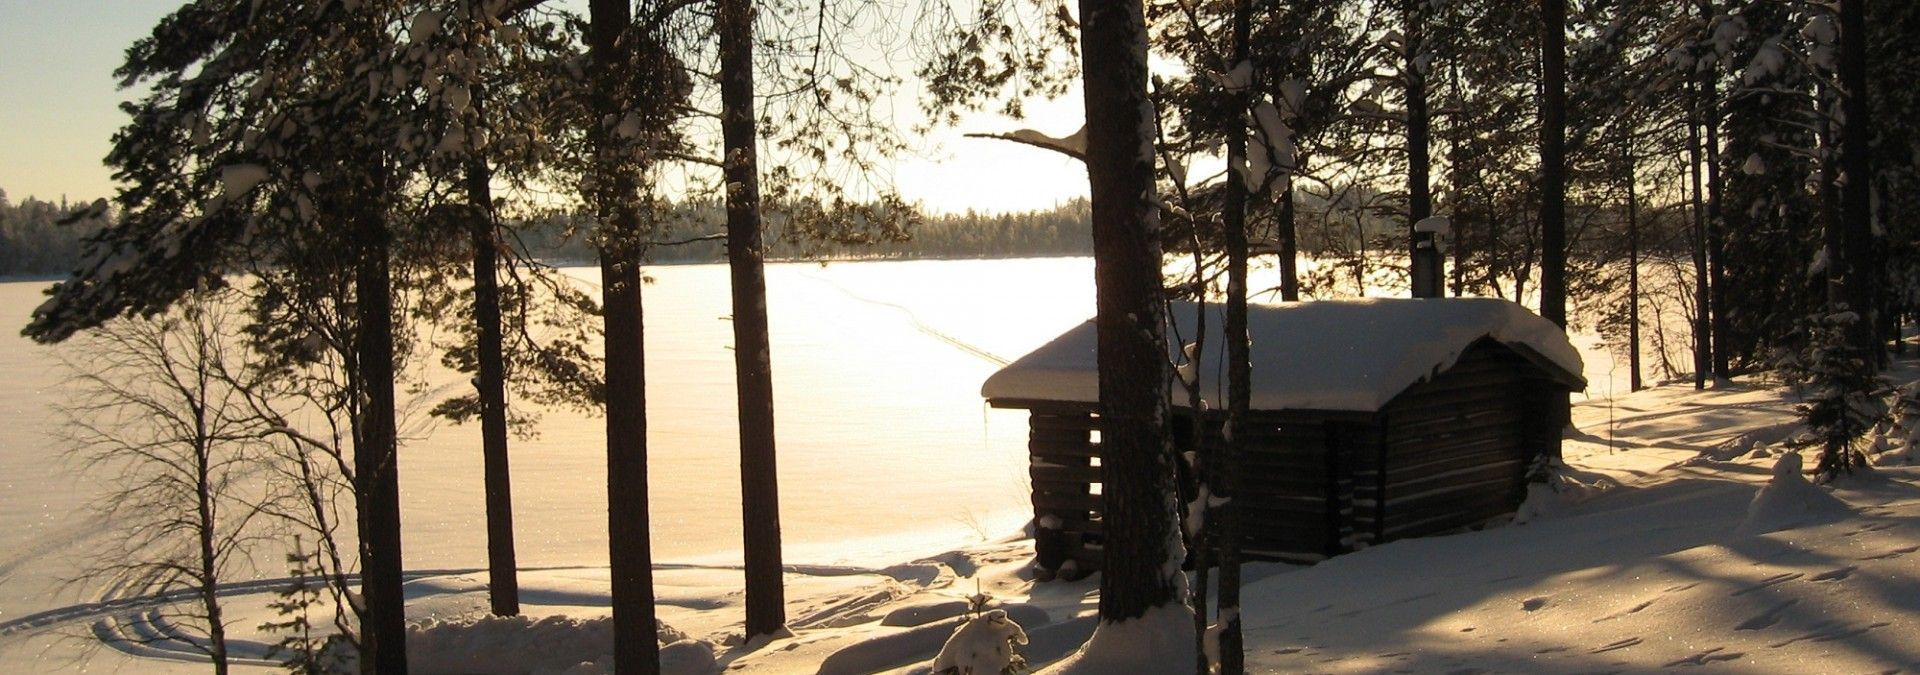 Lake_View_Arctic_Adventure_Finland.jpg